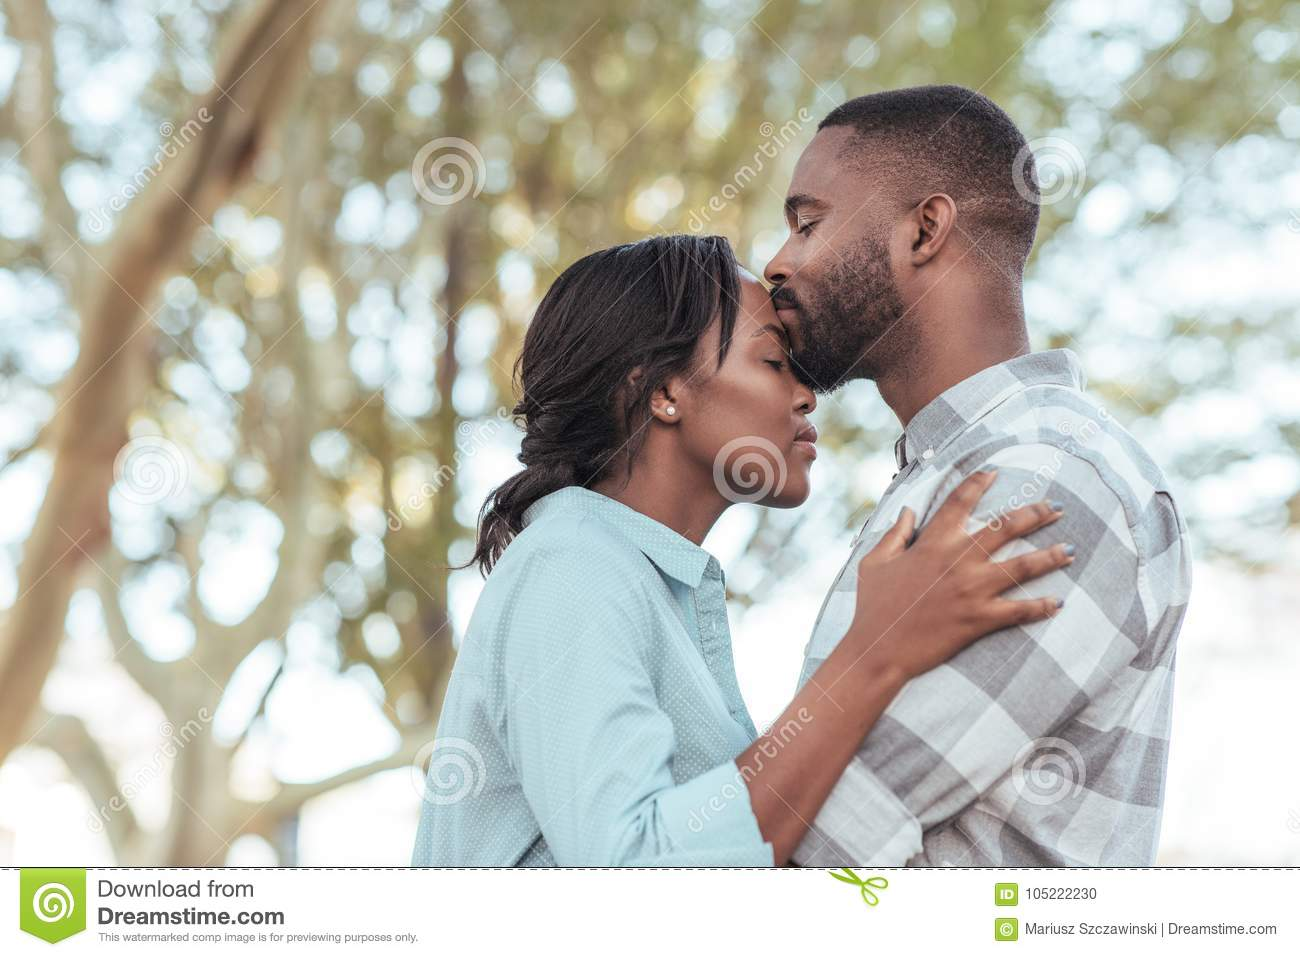 Romantic young African man kissing his girlfriend`s forehead outdoors